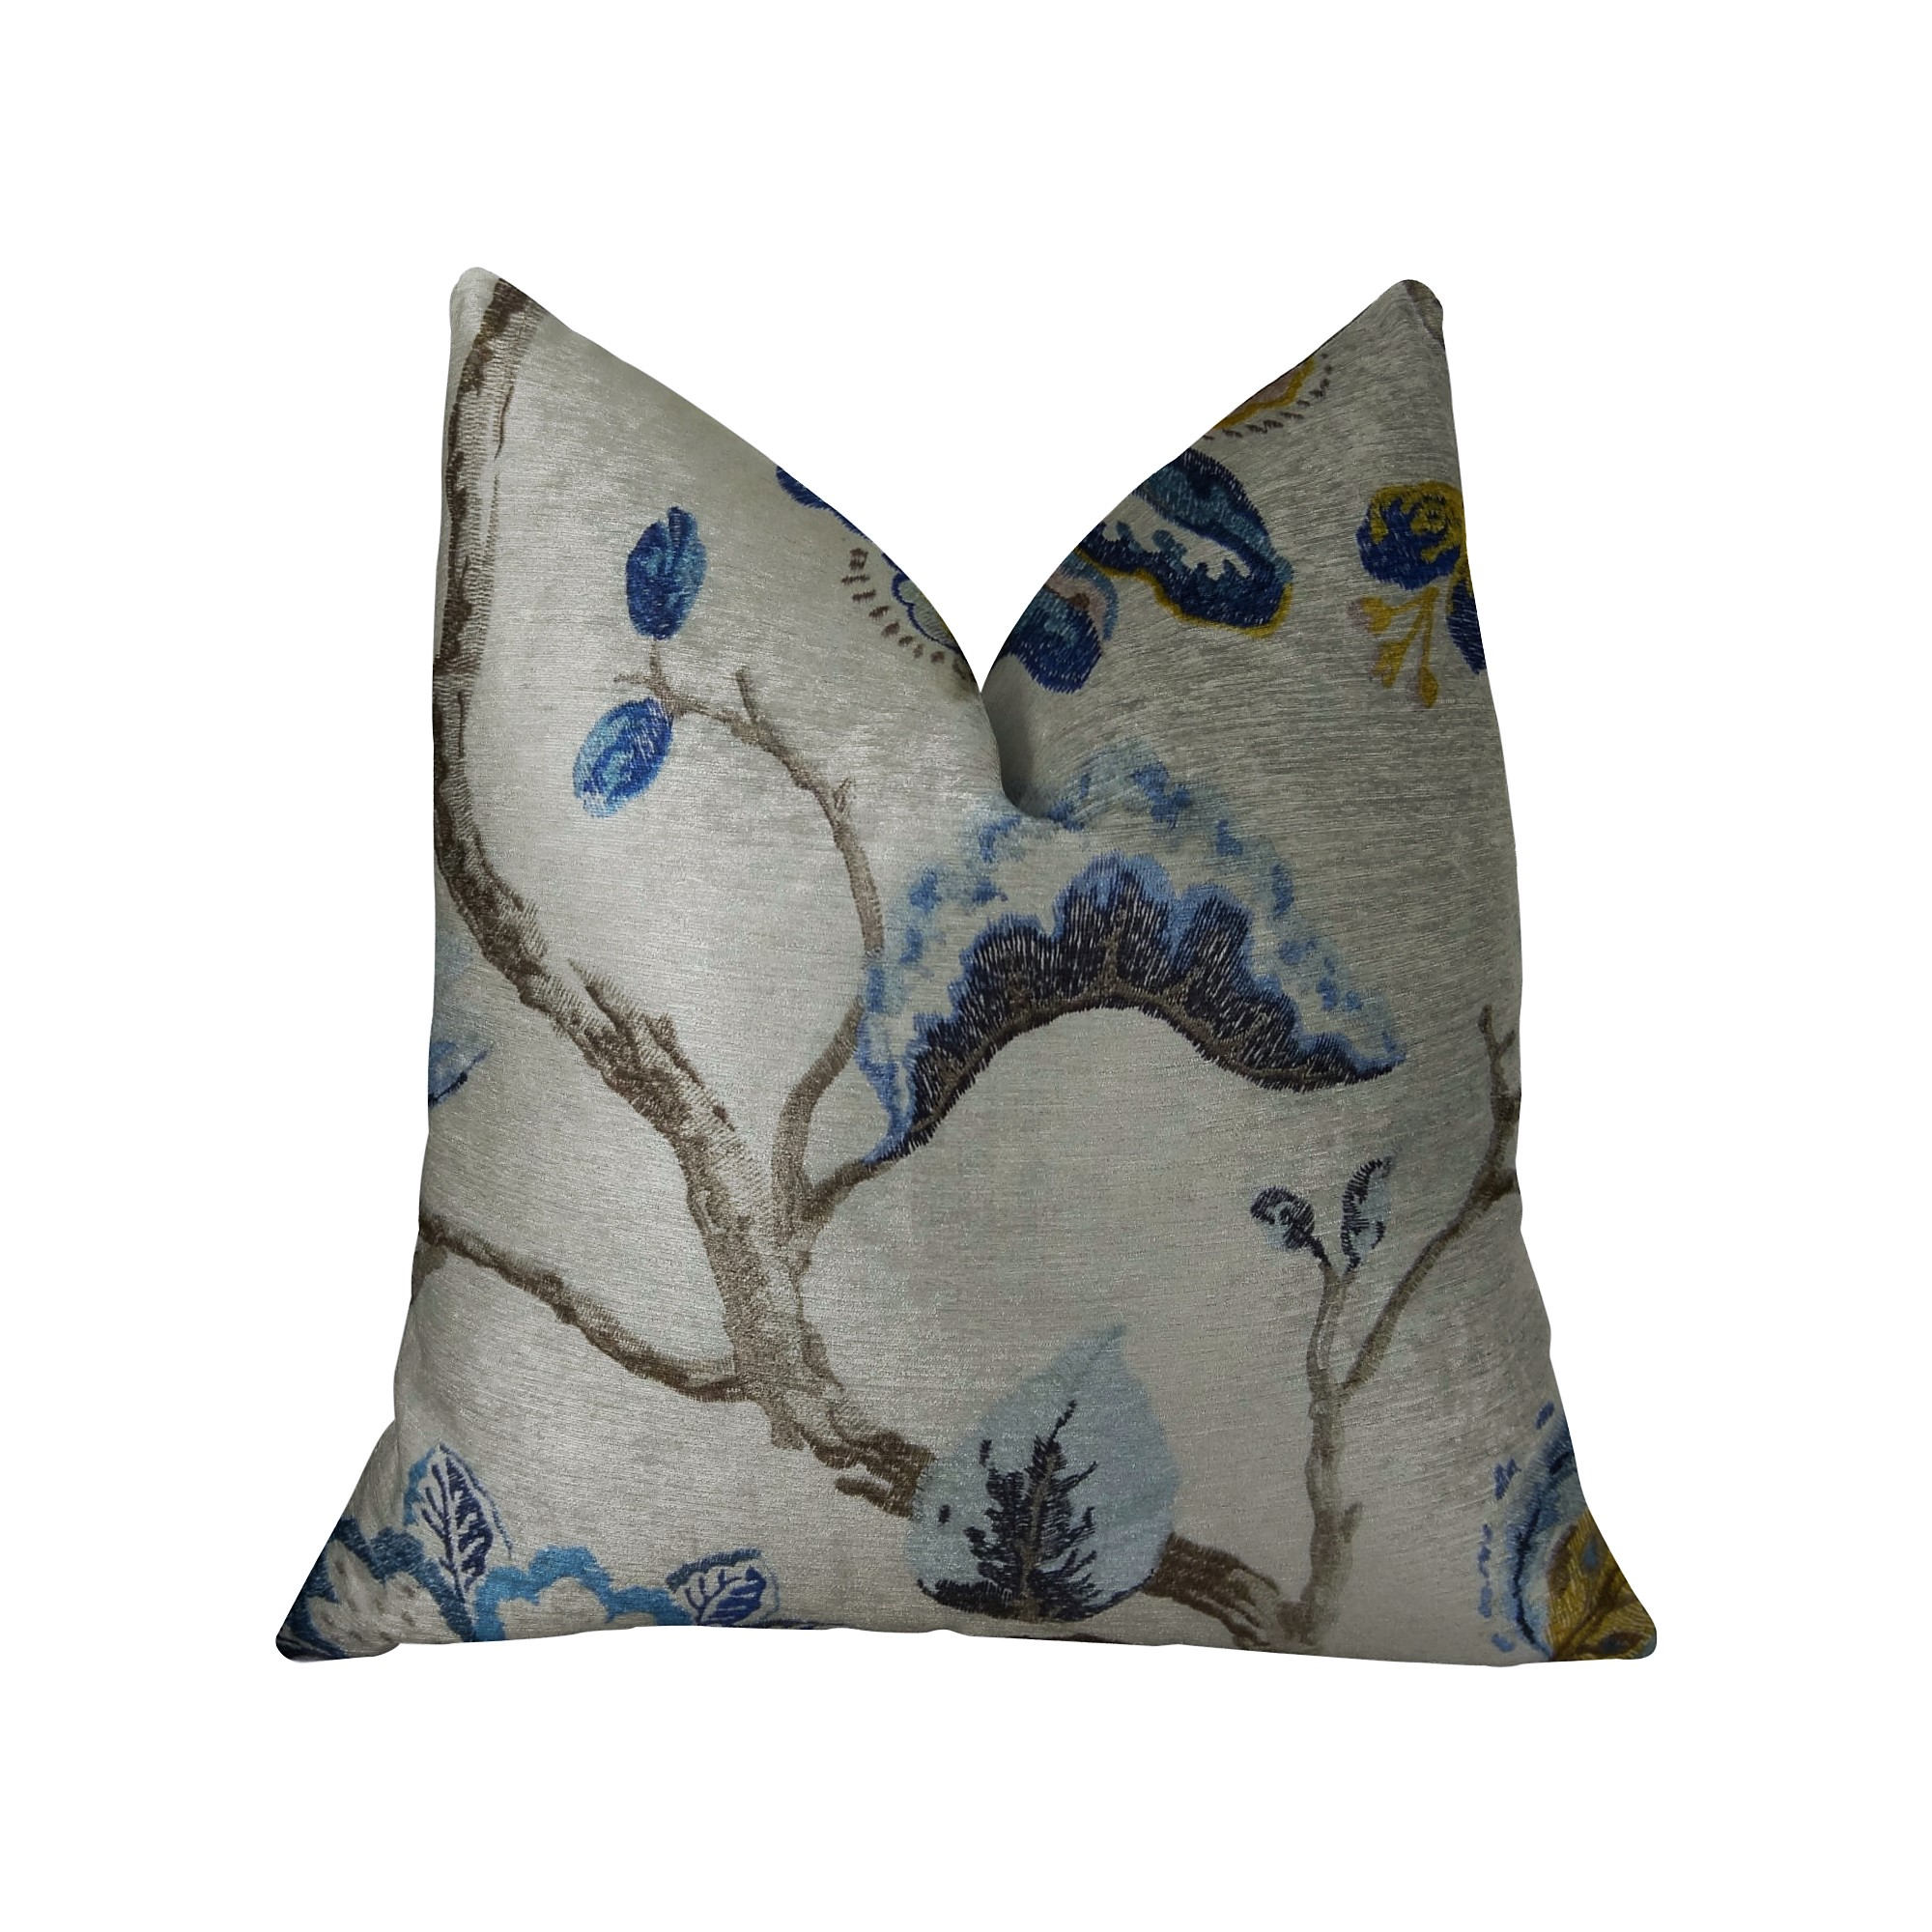 Plutus Bloom City Handmade Throw Pillow, Double Sided